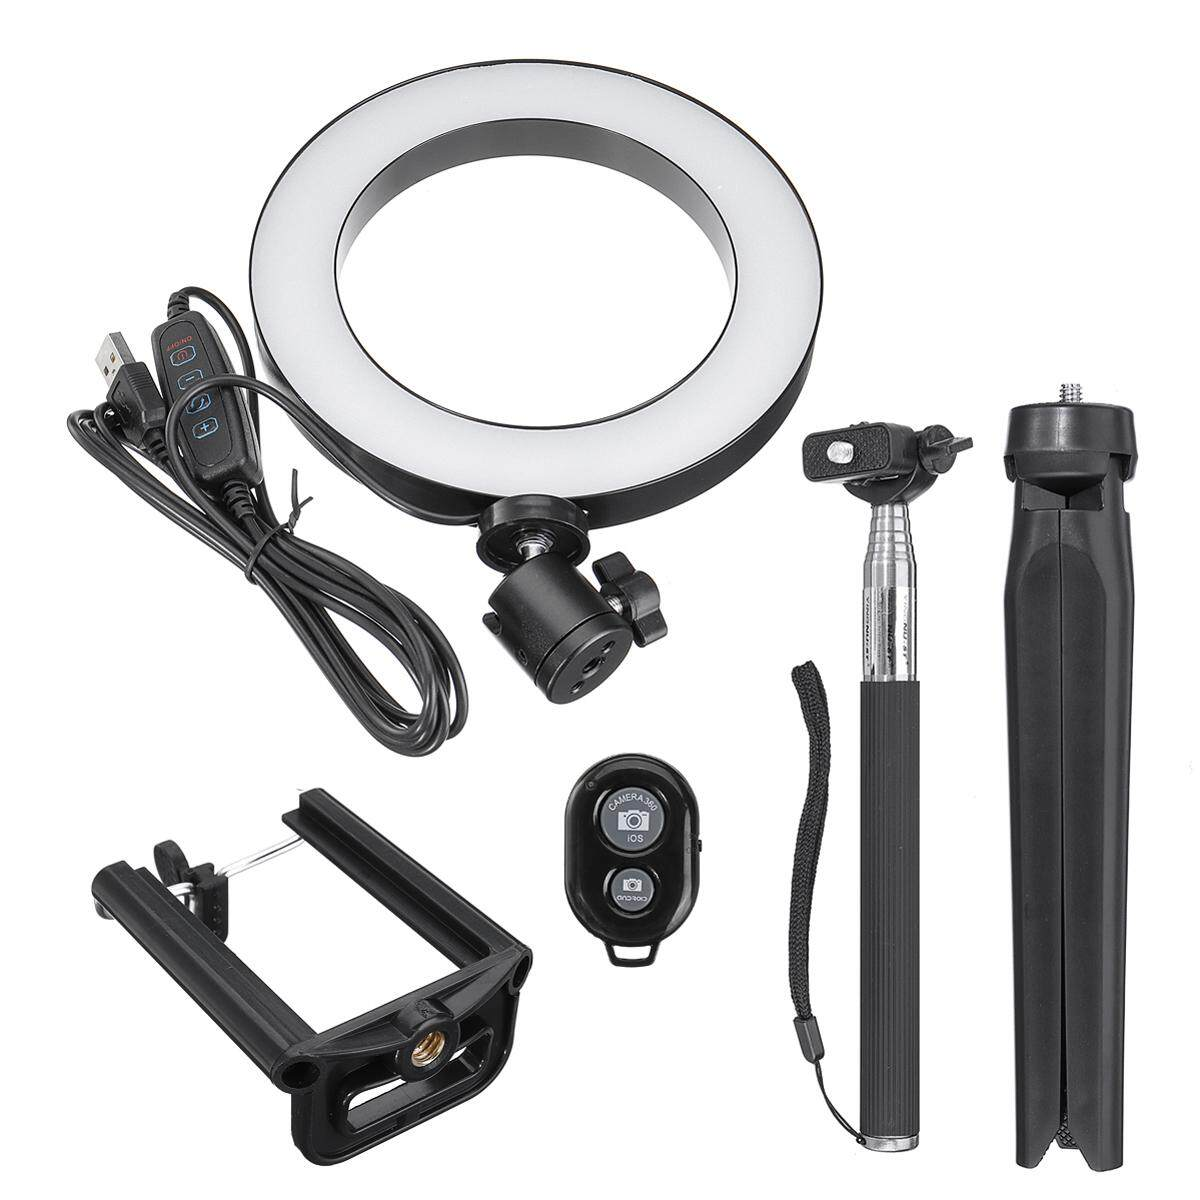 6 inch LED Ring Light with Stand Lighting Kit 10 Level Brightness for Live